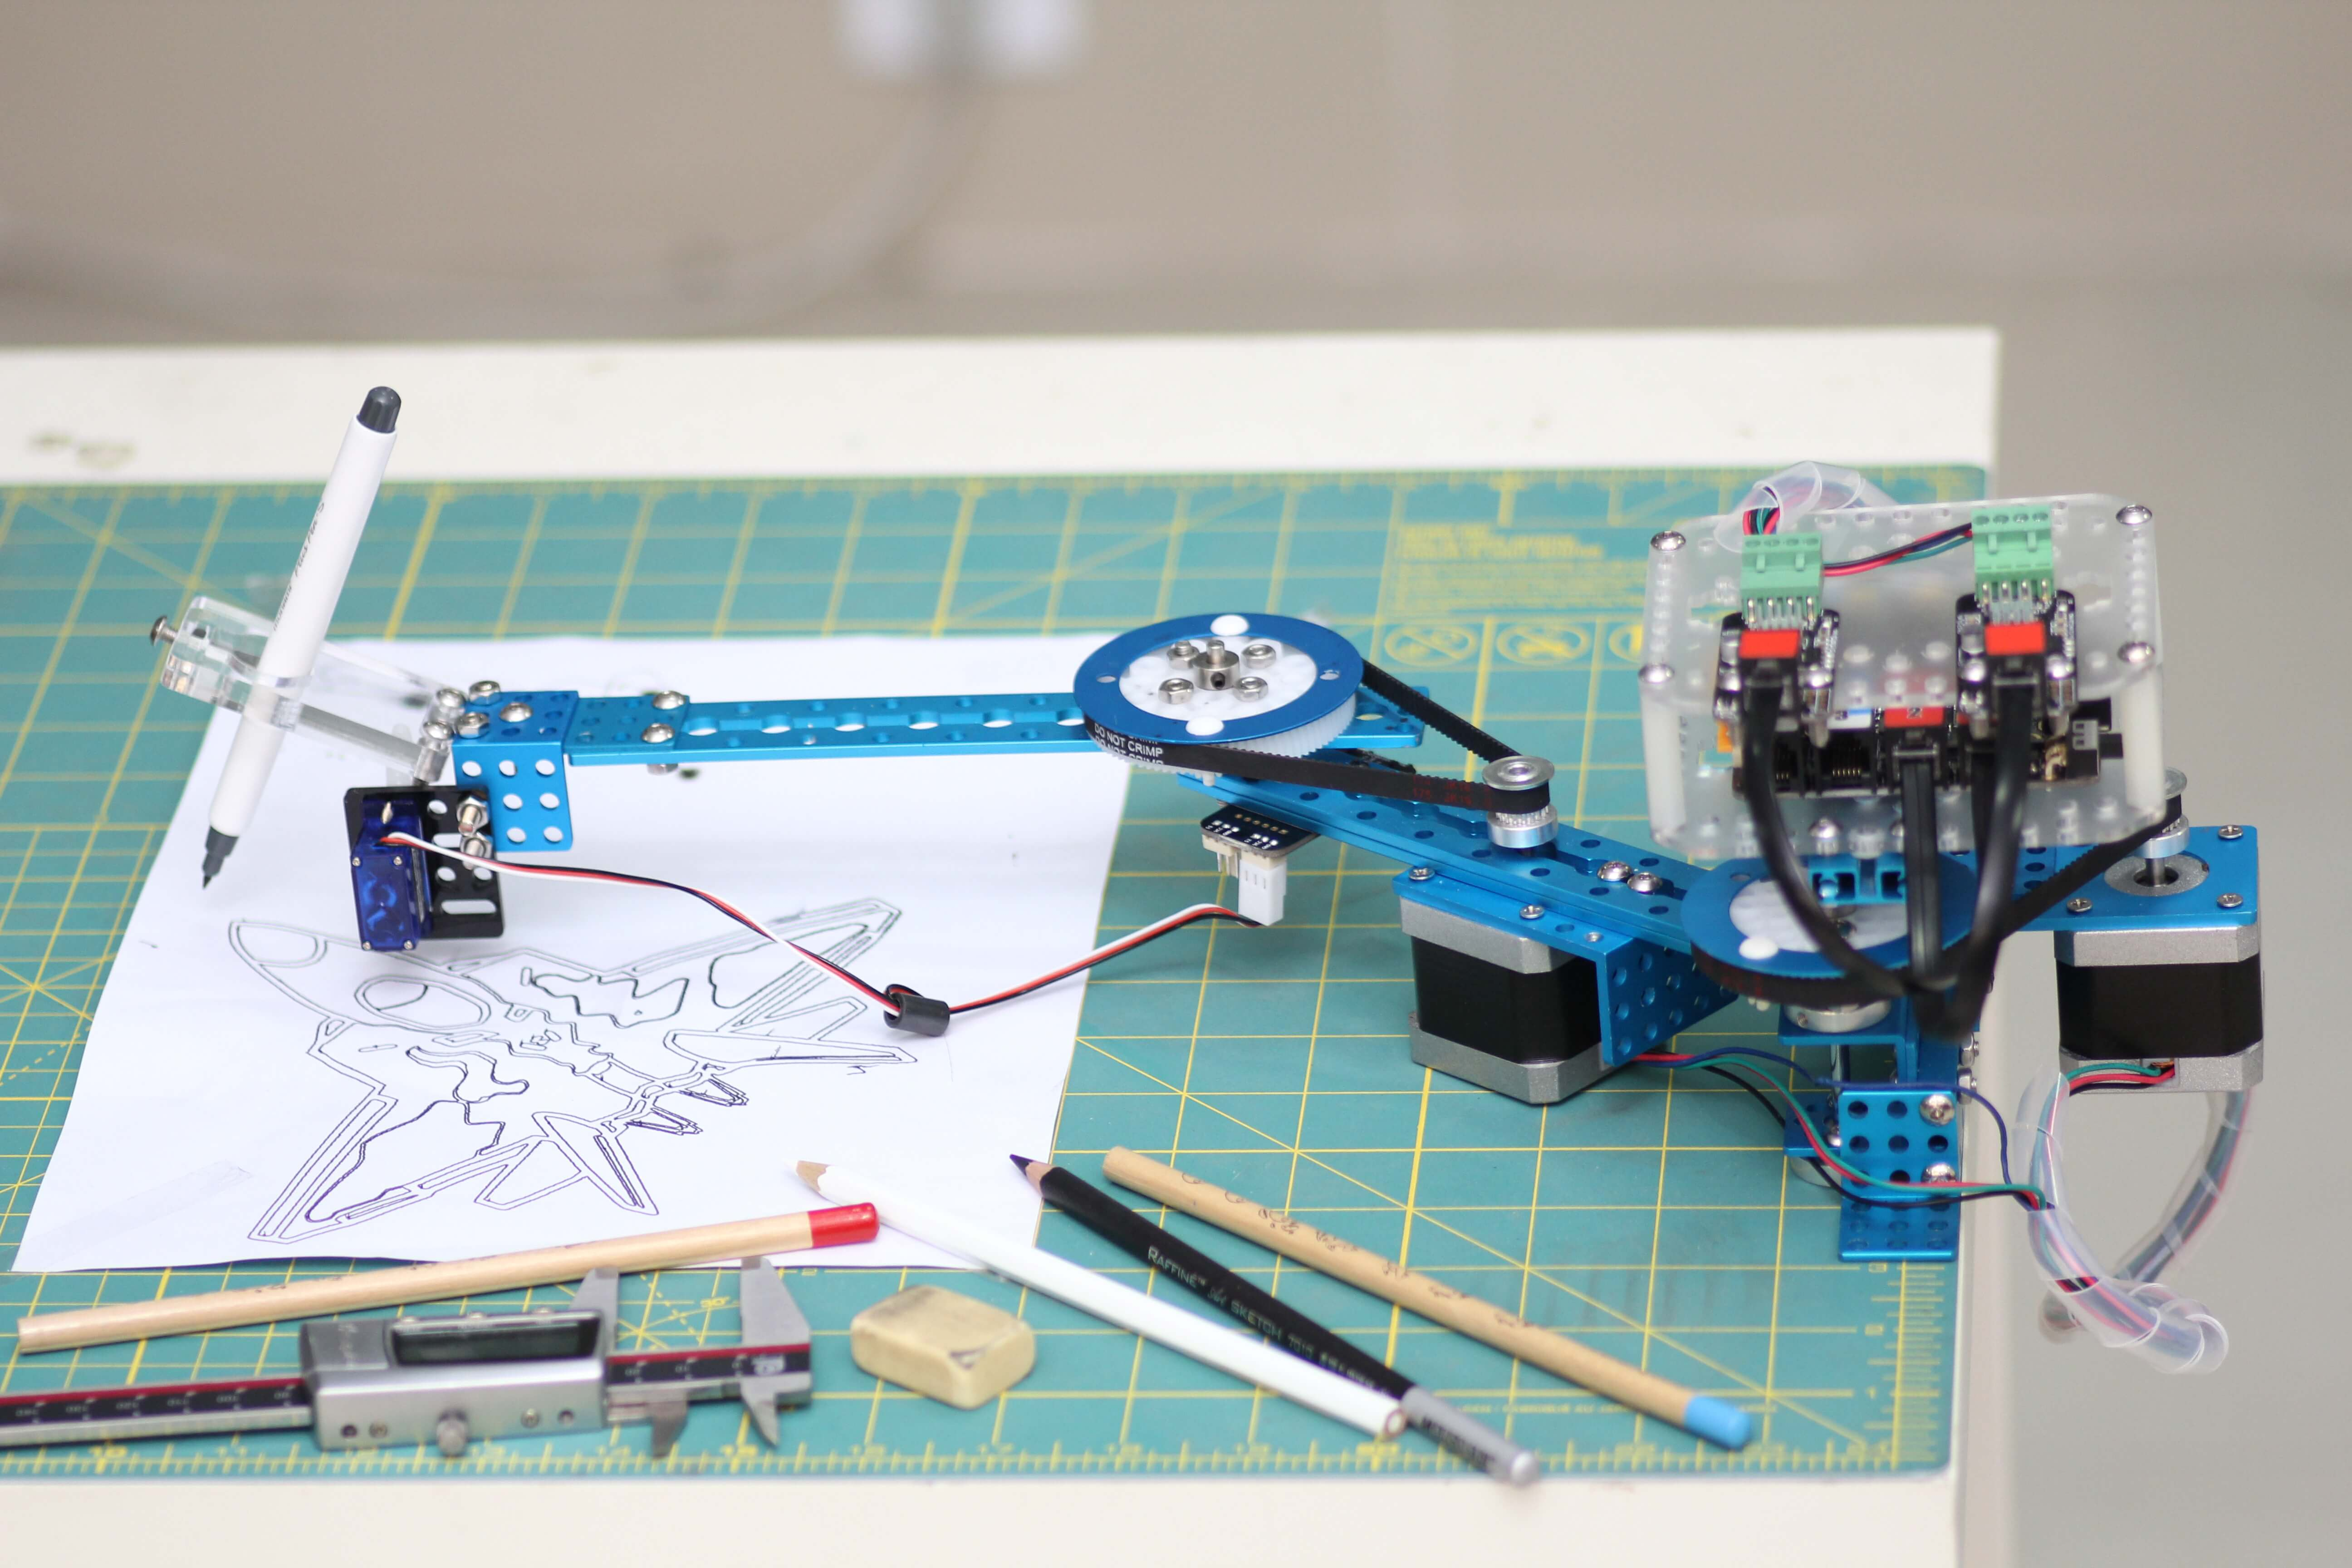 4-in-1 Drawbot Decorates Walls, Floors, Eggs, More | Make: